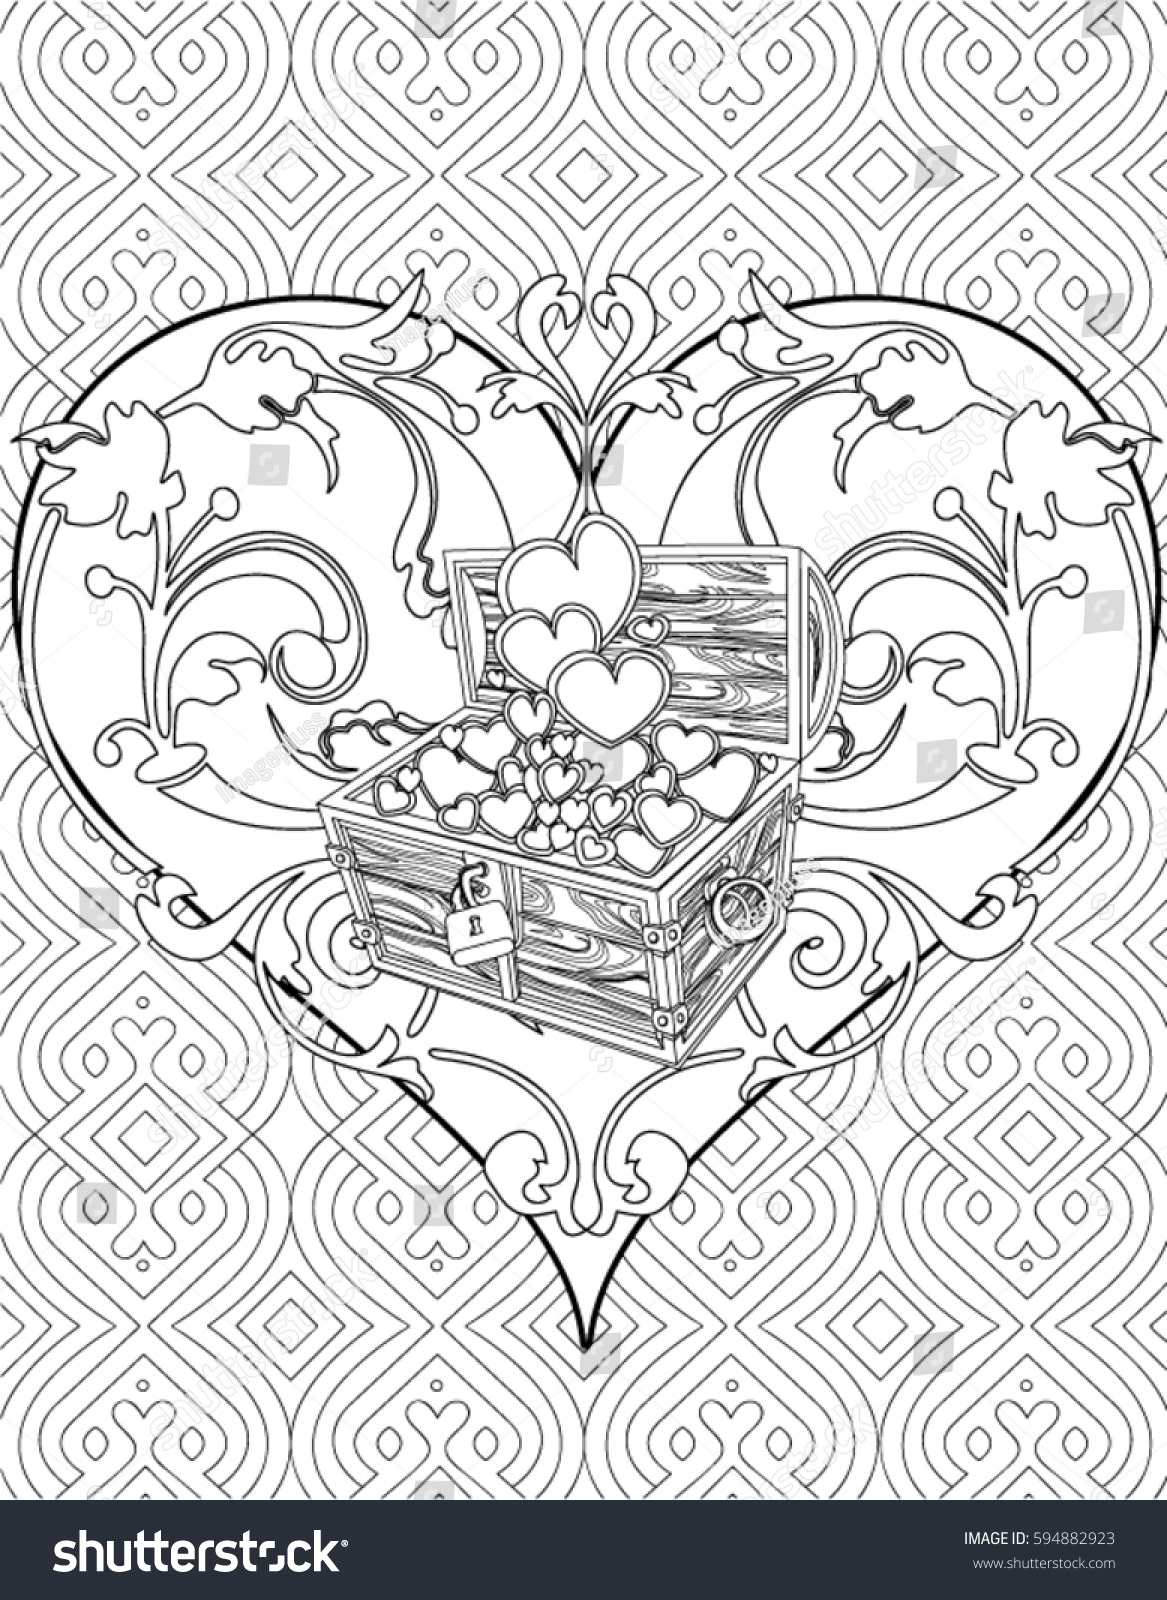 Heart Coloring Page Adult Stock Vector 594882923 - Shutterstock